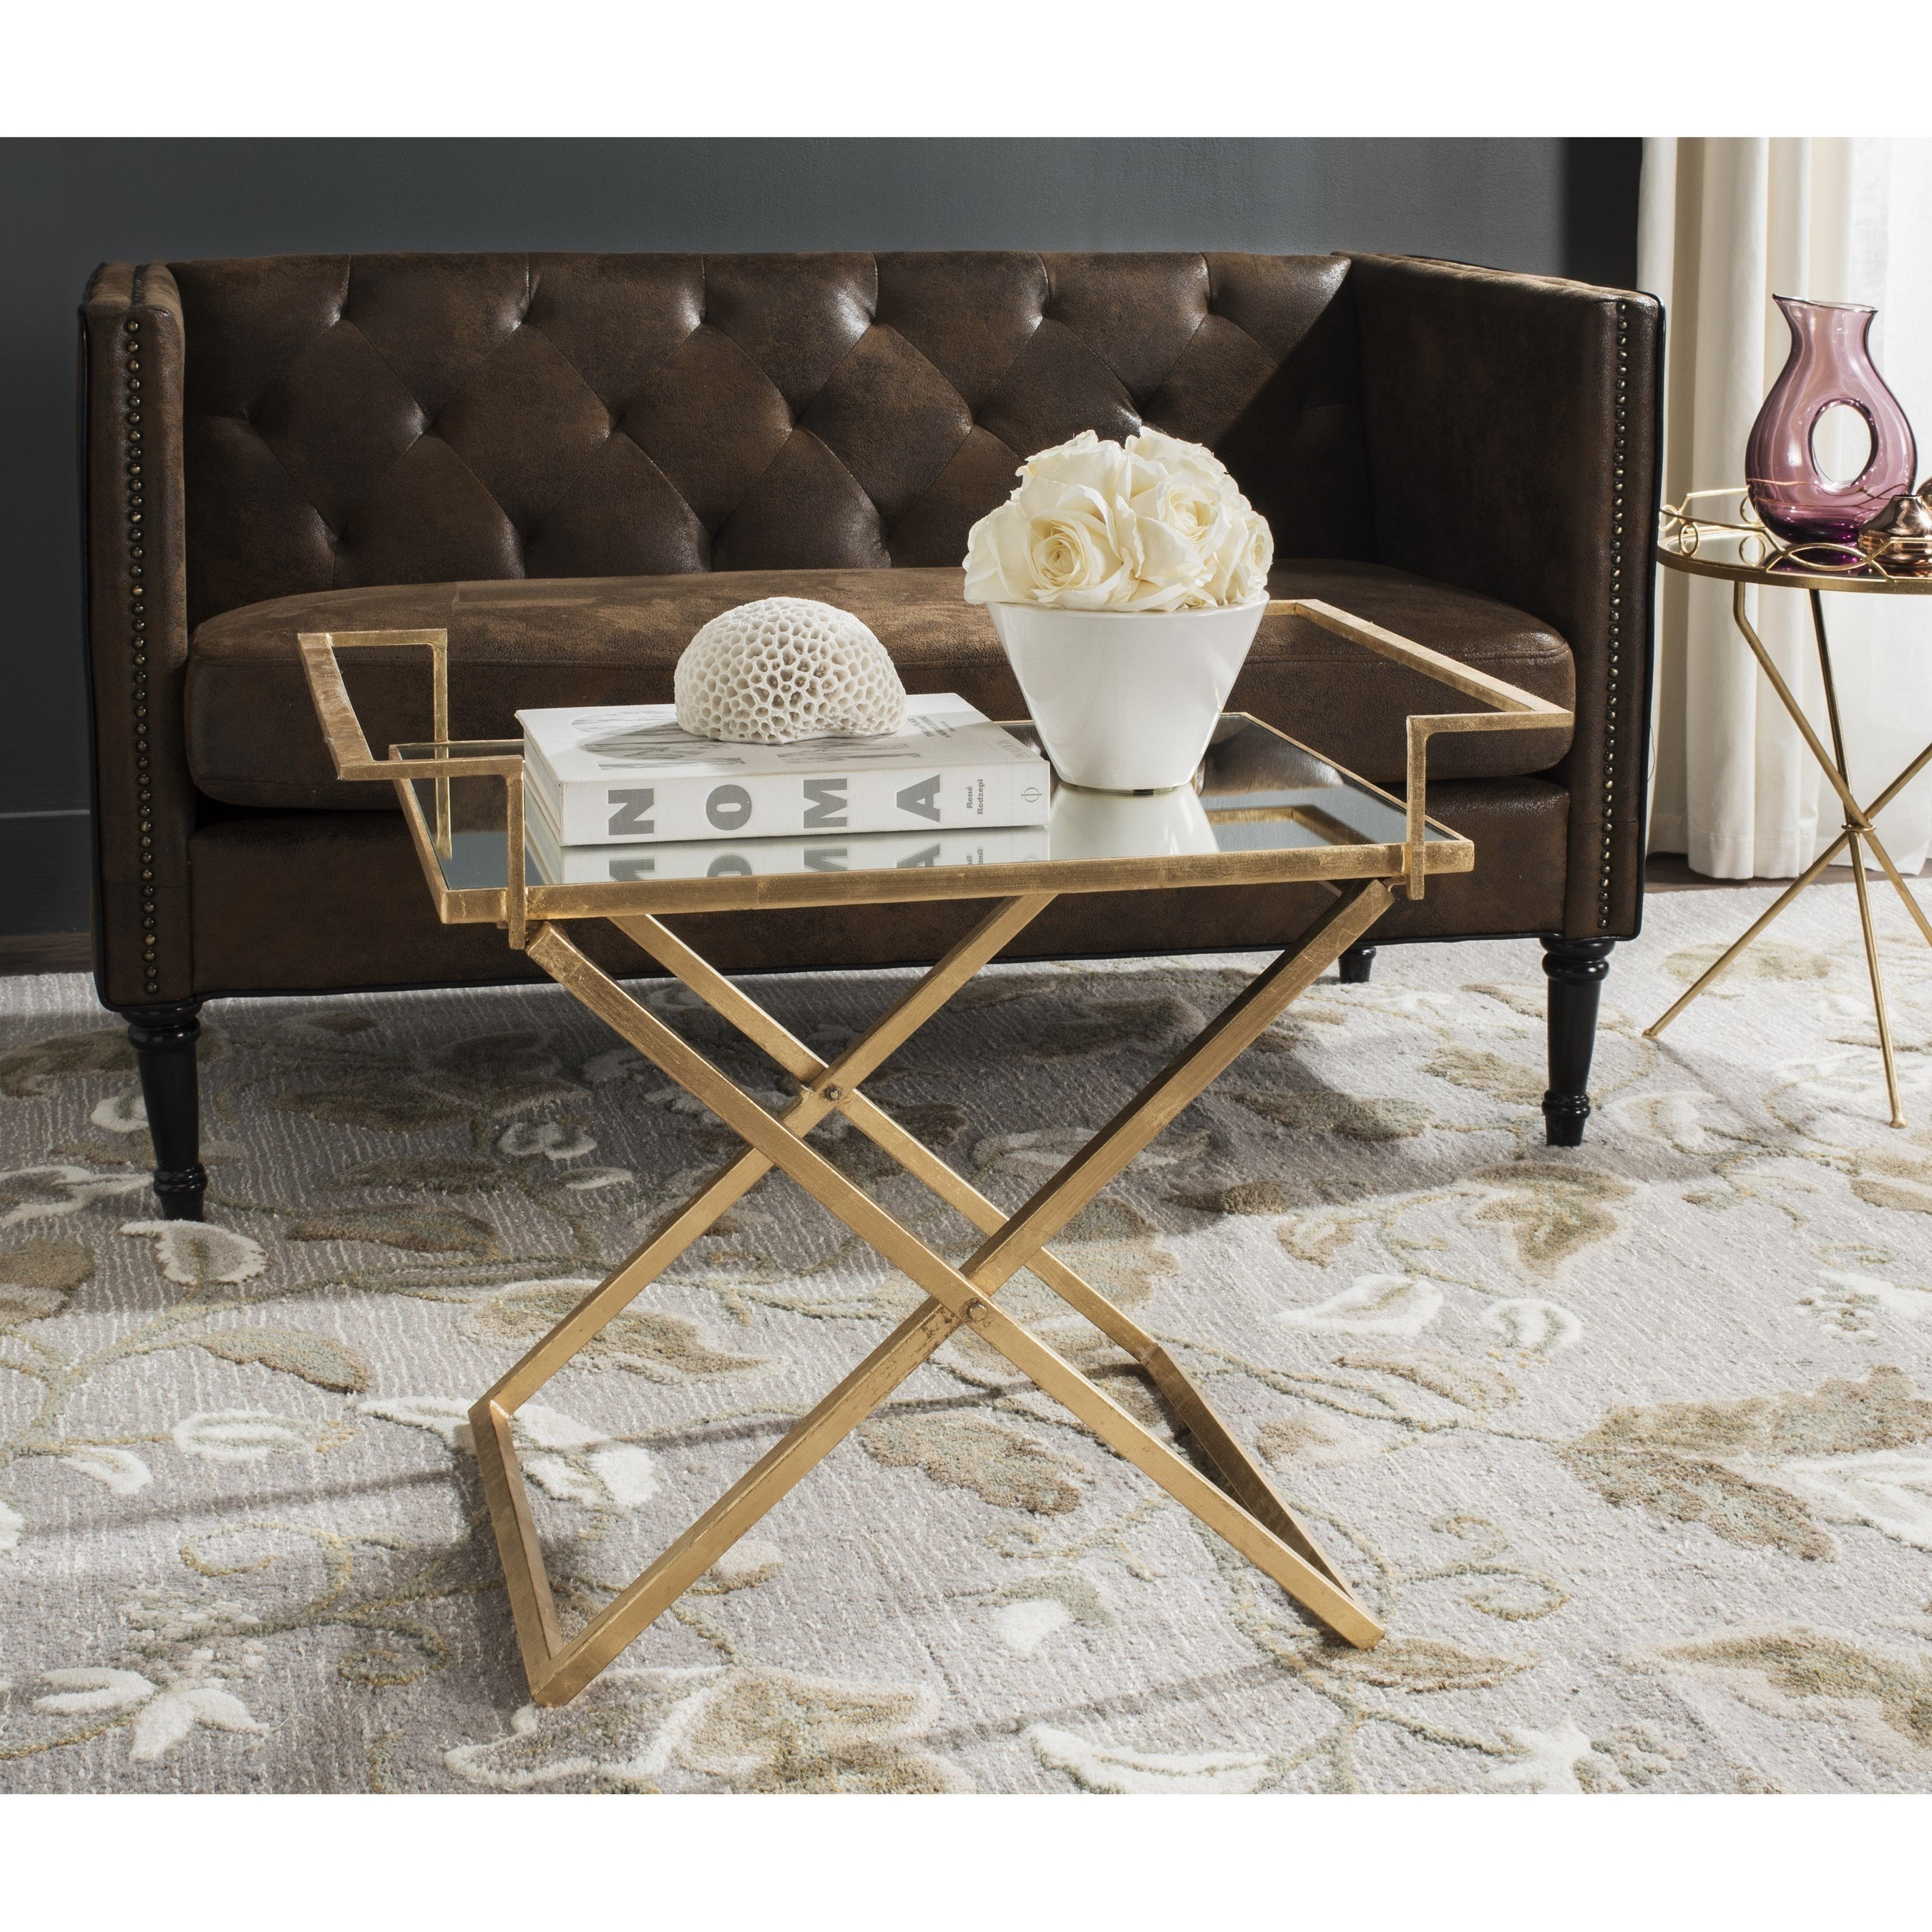 safavieh pierre antique gold leaf accent table free shipping today patio dining furniture round plastic tablecloths with elastic distressed entry ellipsis black glass side off